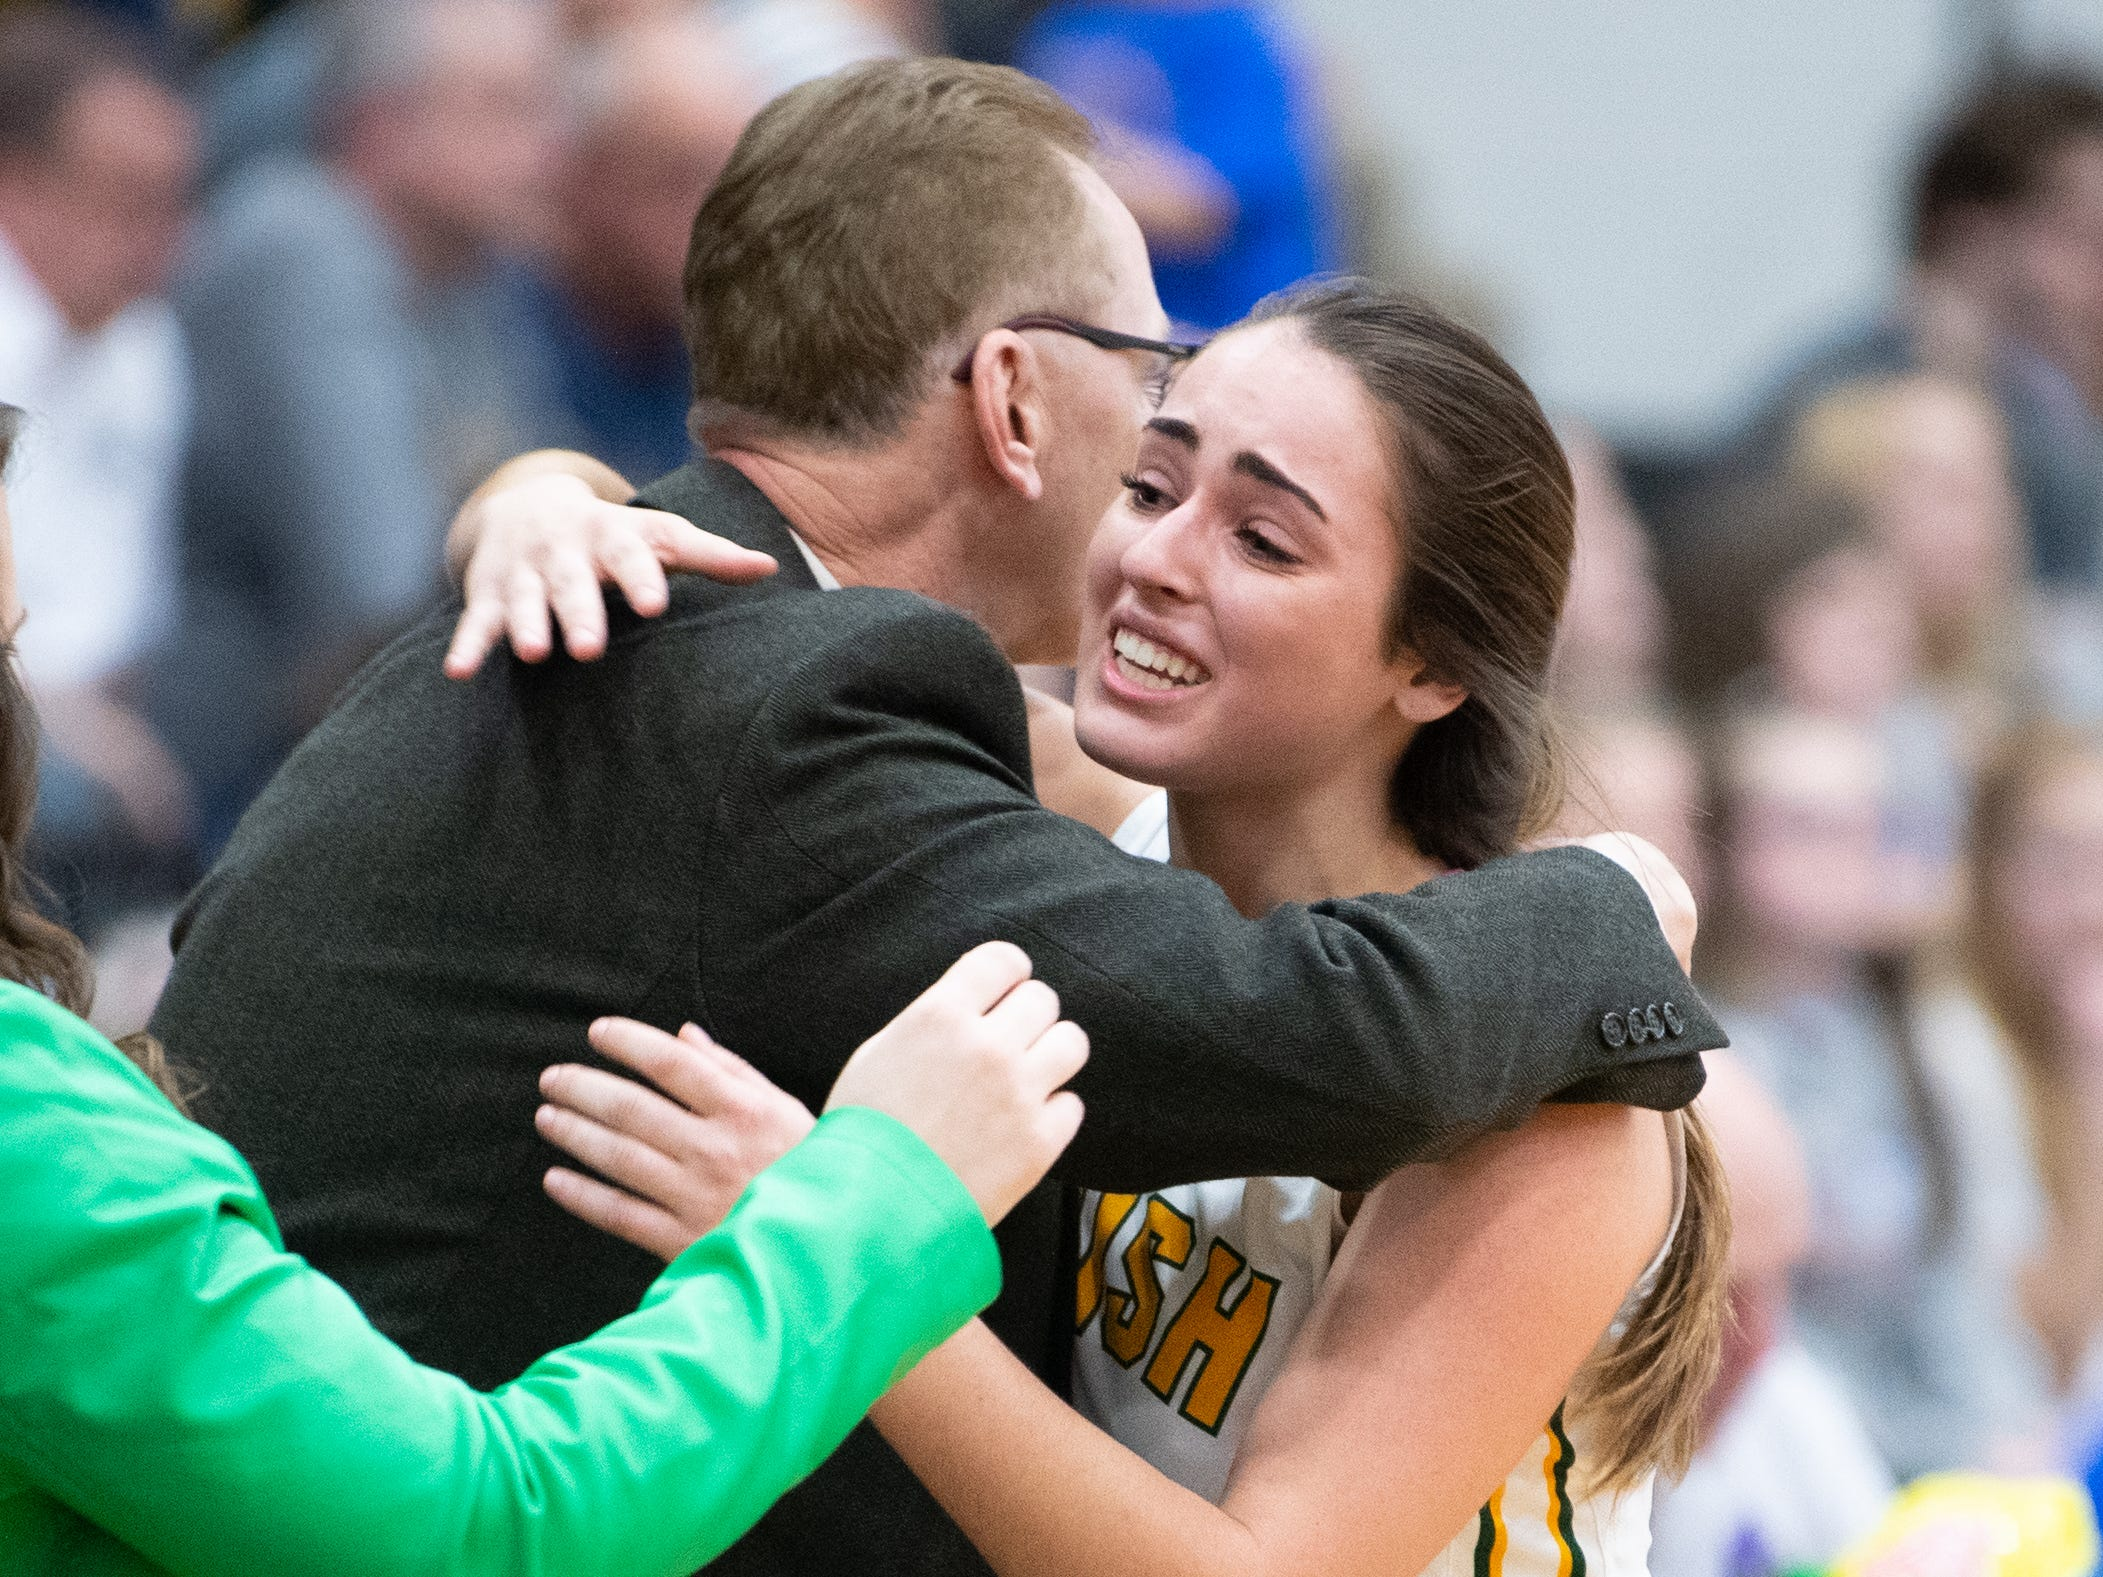 Gina Citrone (4) hugs a York Catholic assistant coach after the PIAA girls' basketball game between York Catholic and Bellwood-Antis, March 15, 2019 at Mifflin County High School. The Fighting Irish lost to the Lady Blue Devils 53 to 47.